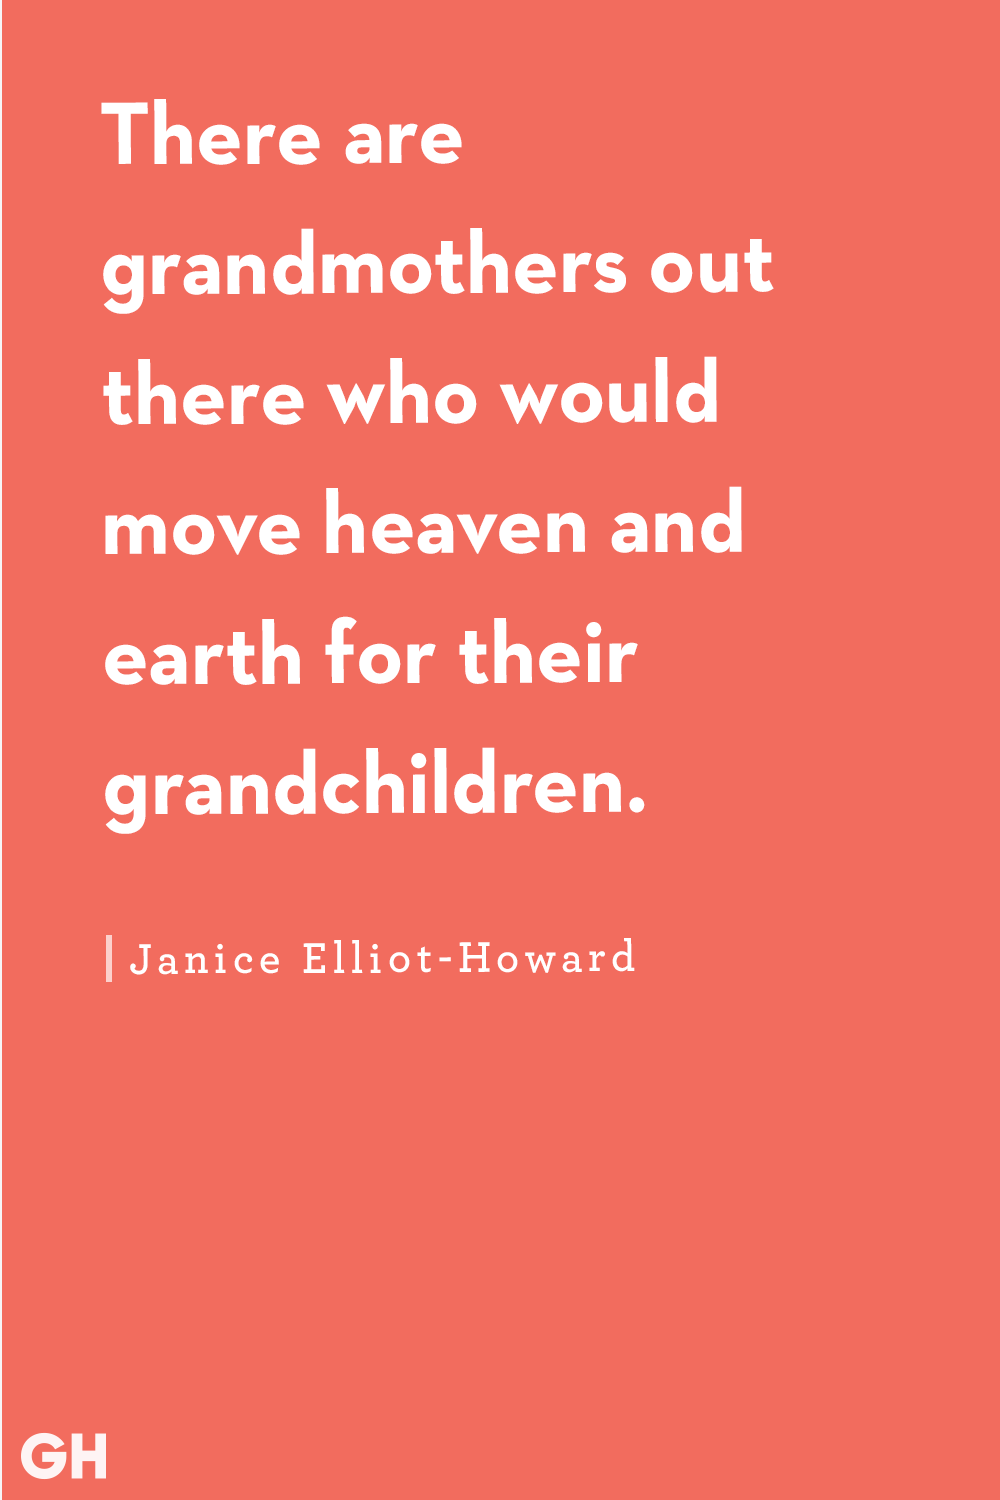 30 Best Grandma Quotes - Fun and Loving Quotes About ...